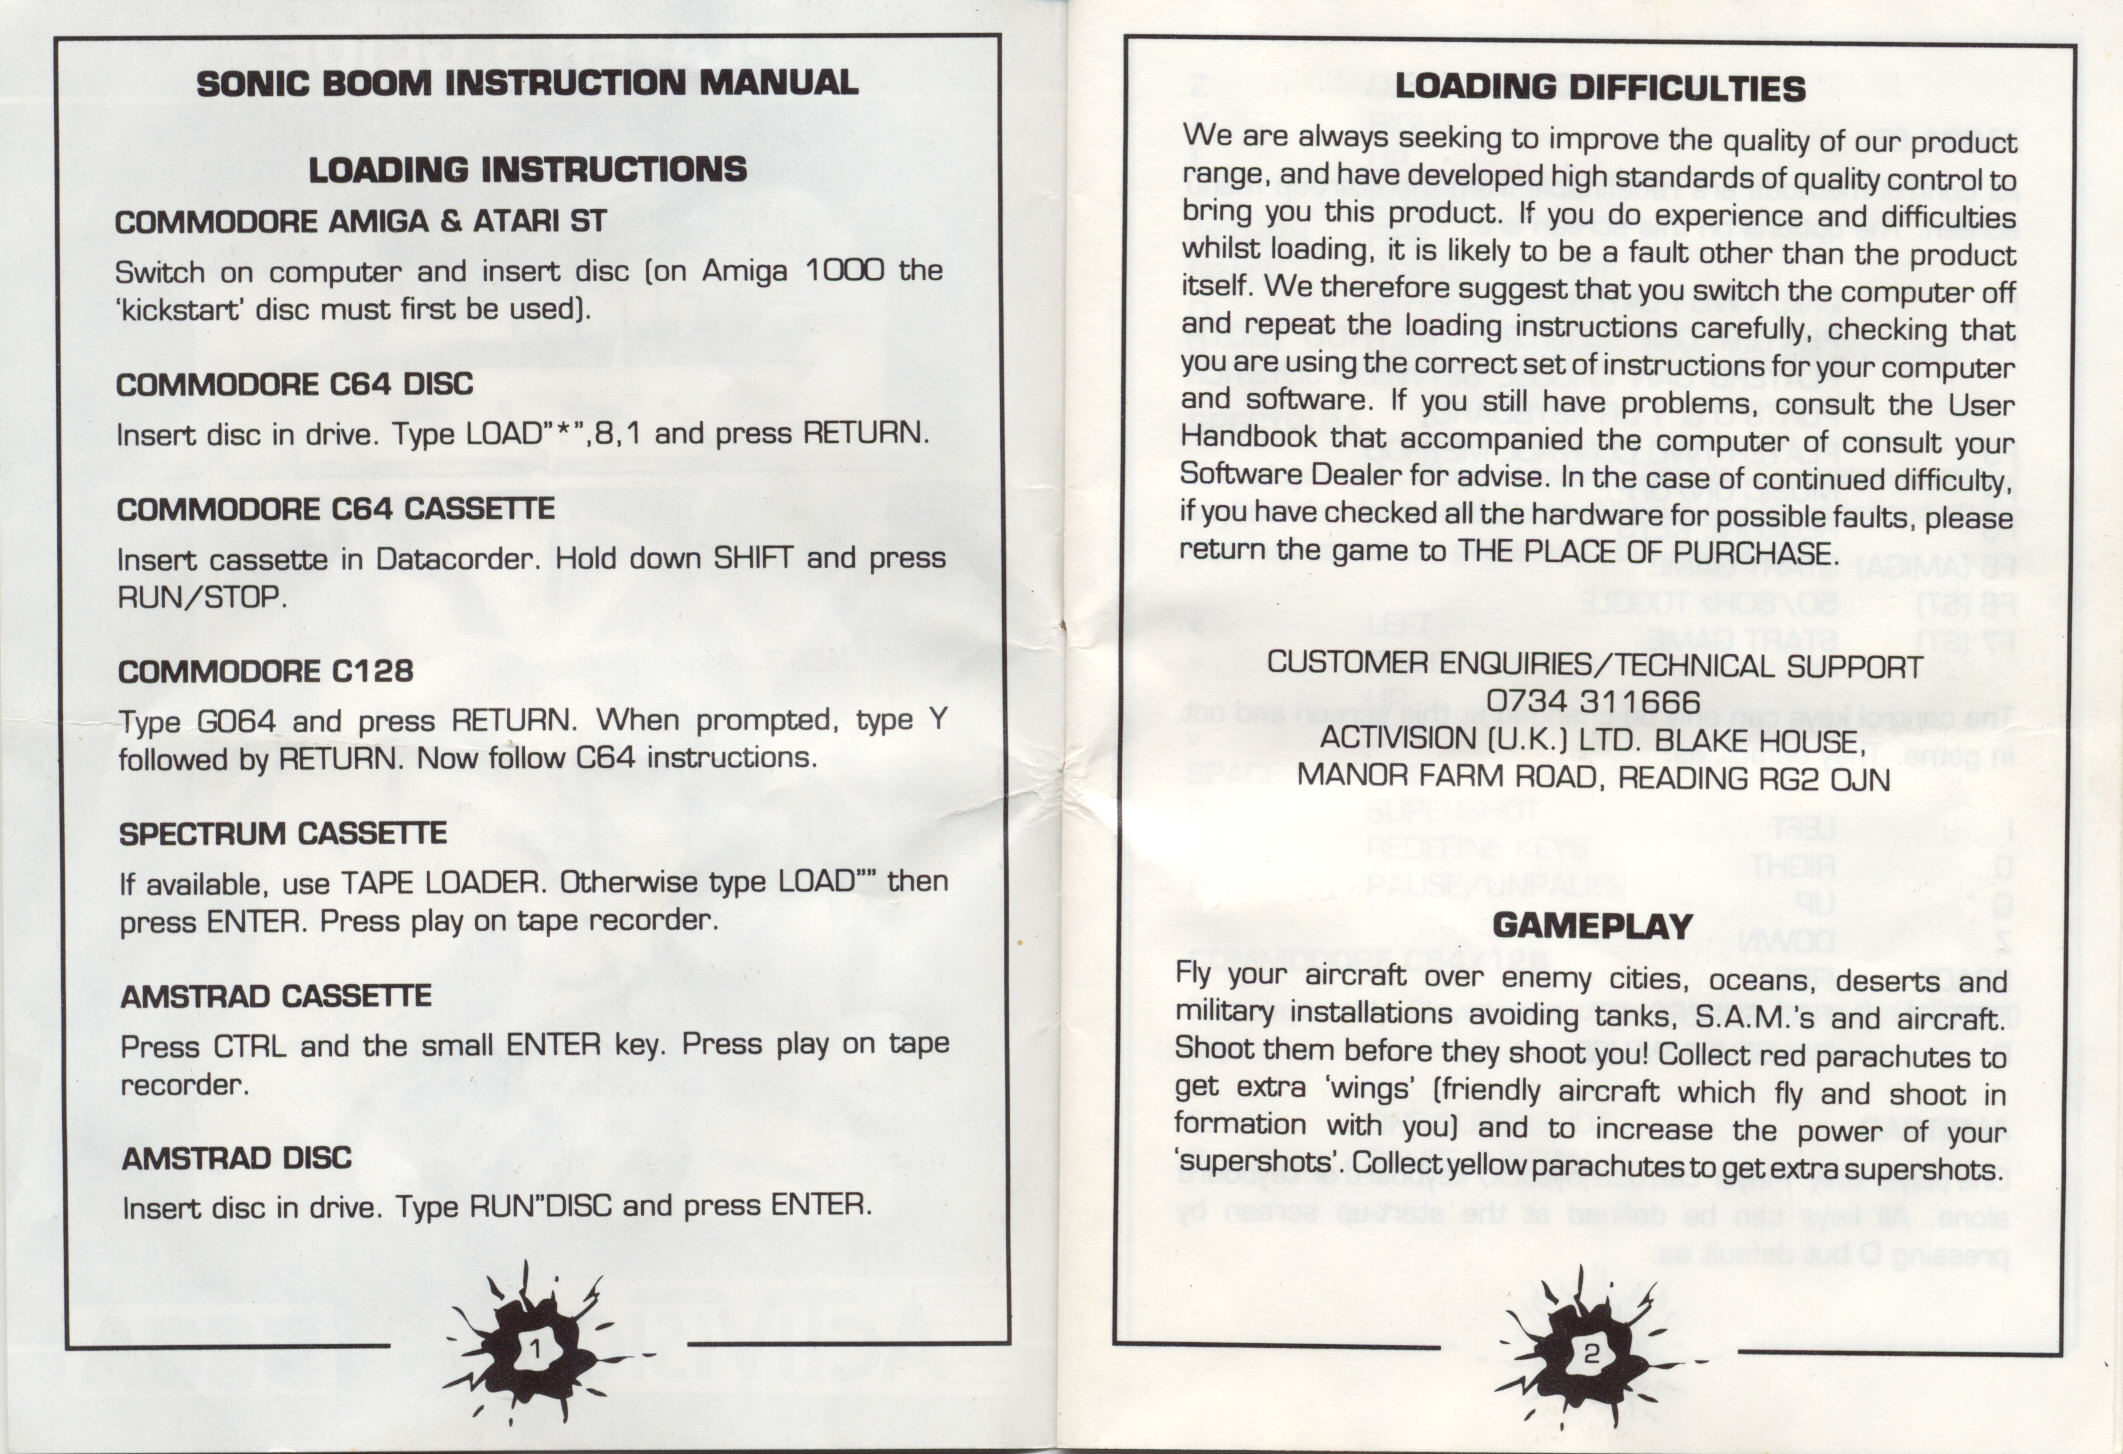 GameBox 64 Instructions Scans for Sonic Boom by Activision